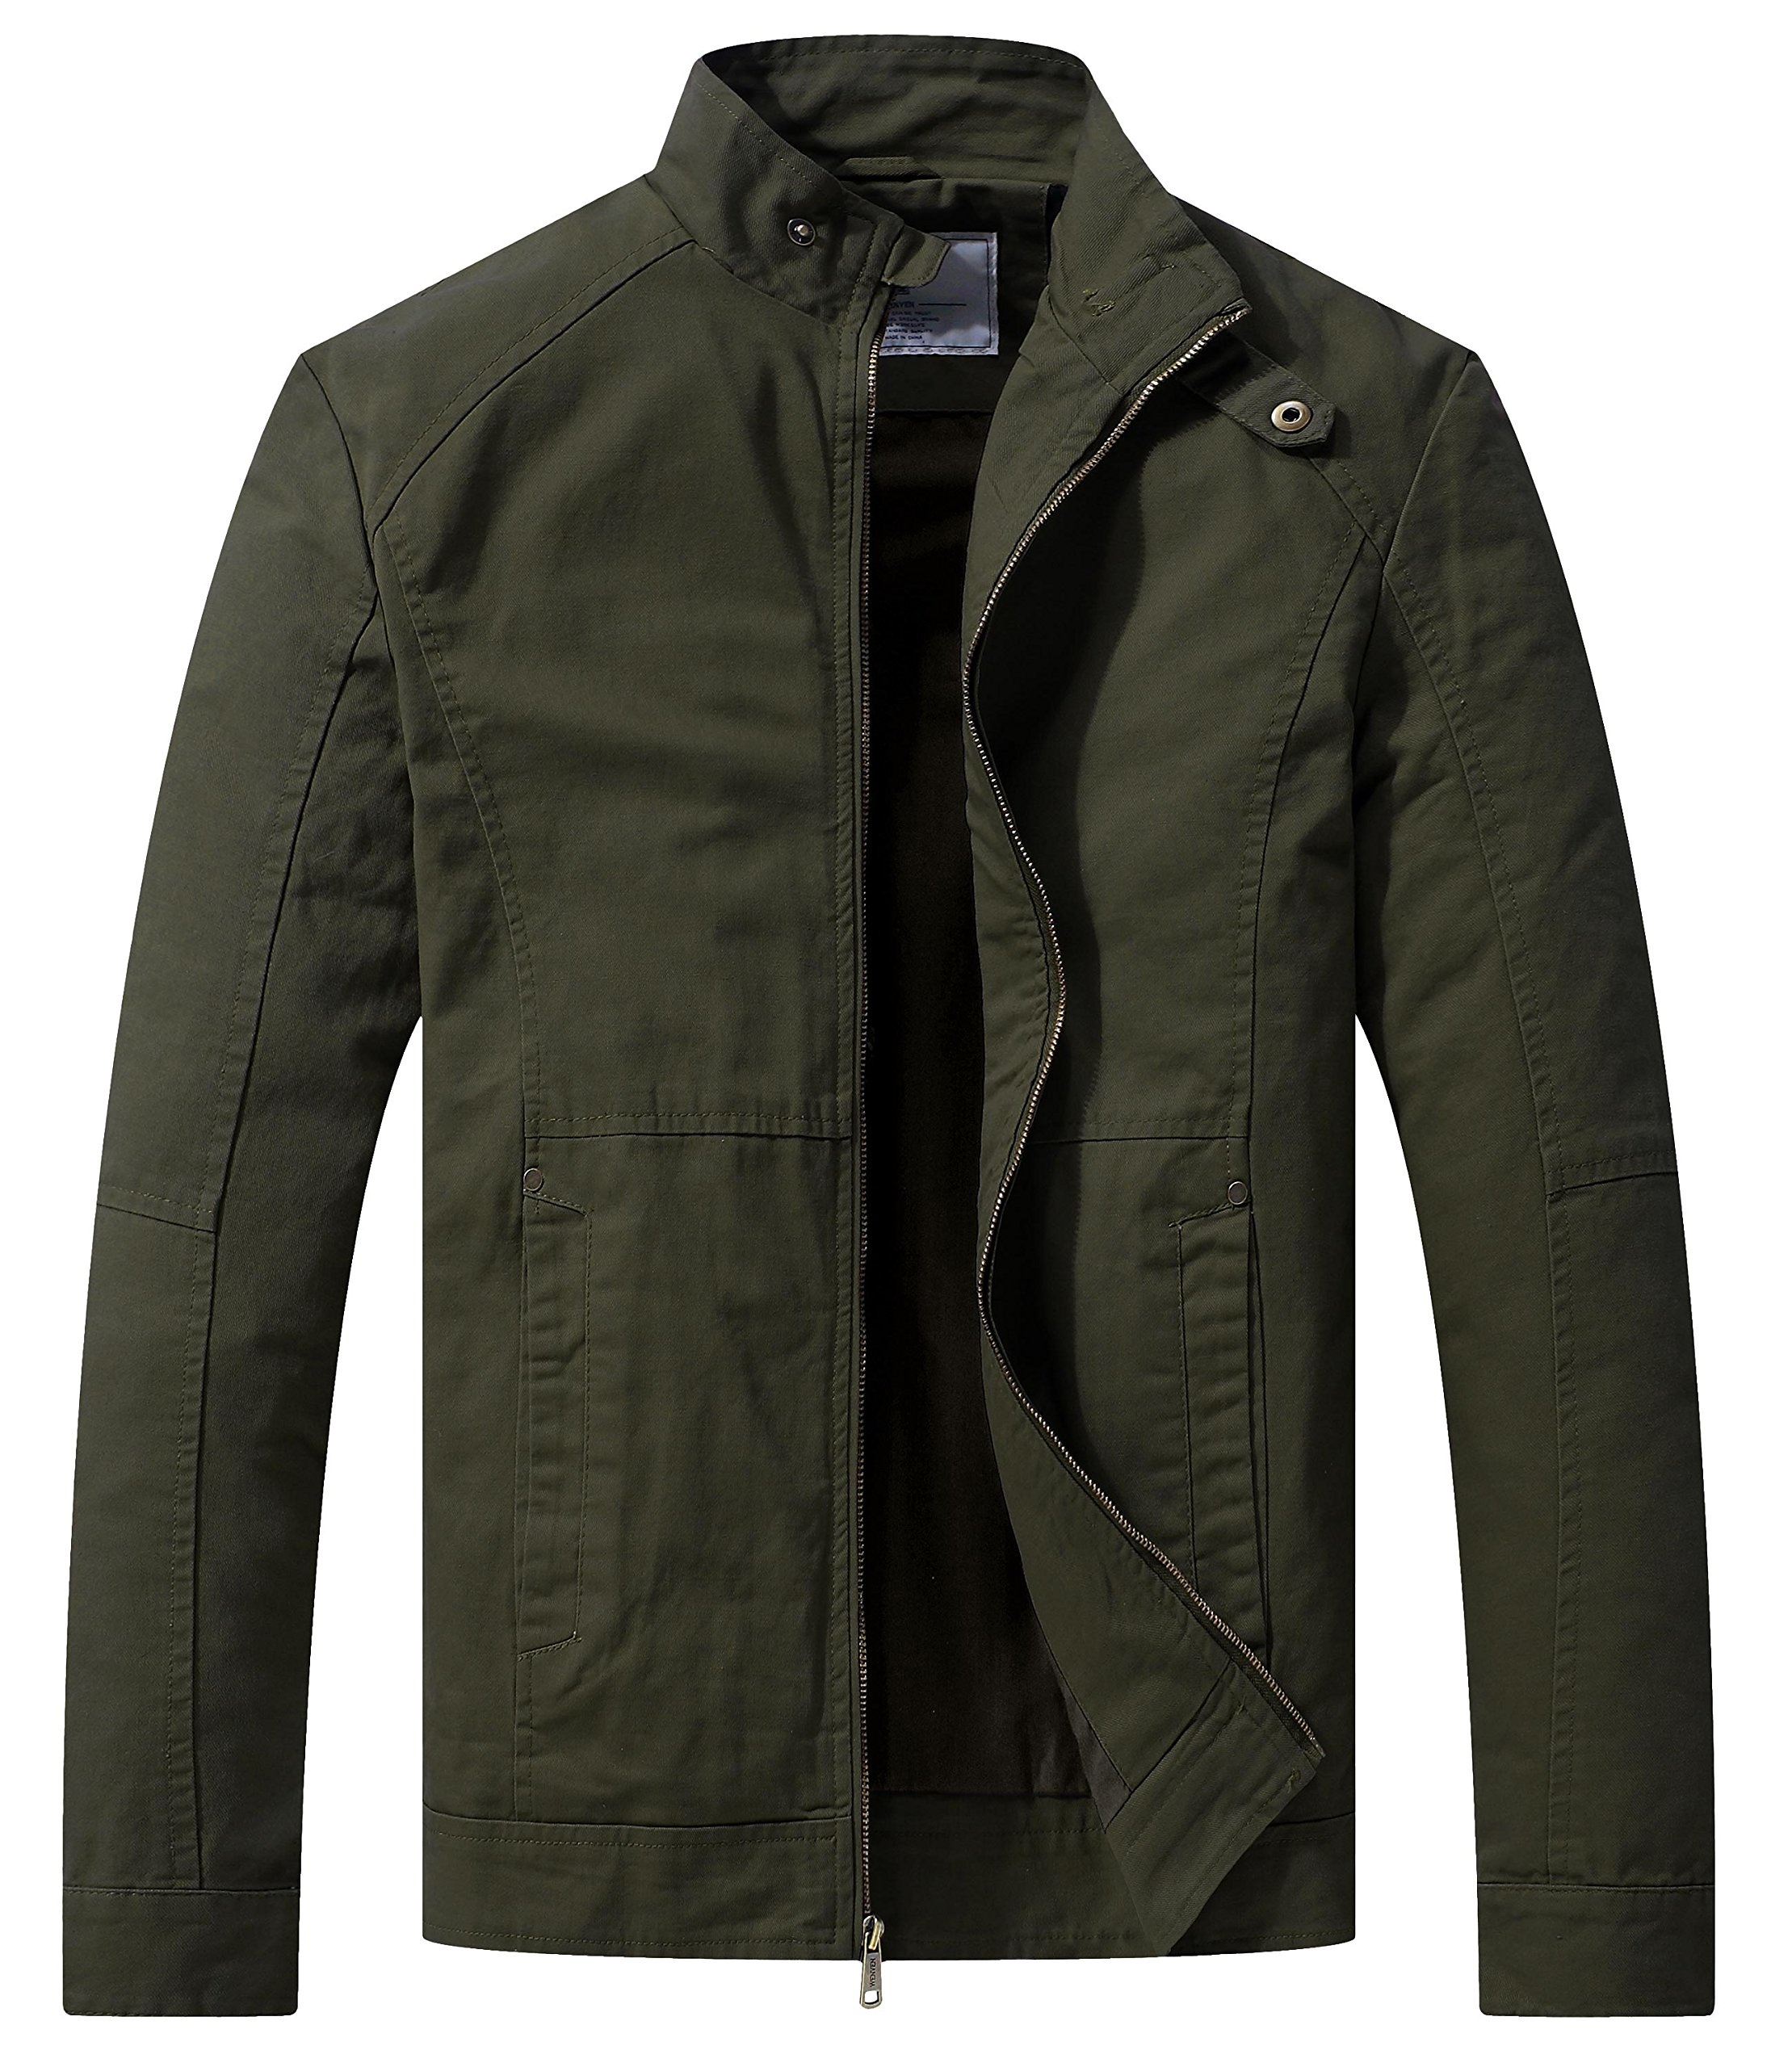 WenVen Men's Spring Casual Lightweight Full Zip Military Jacket(Army Green,Medium)